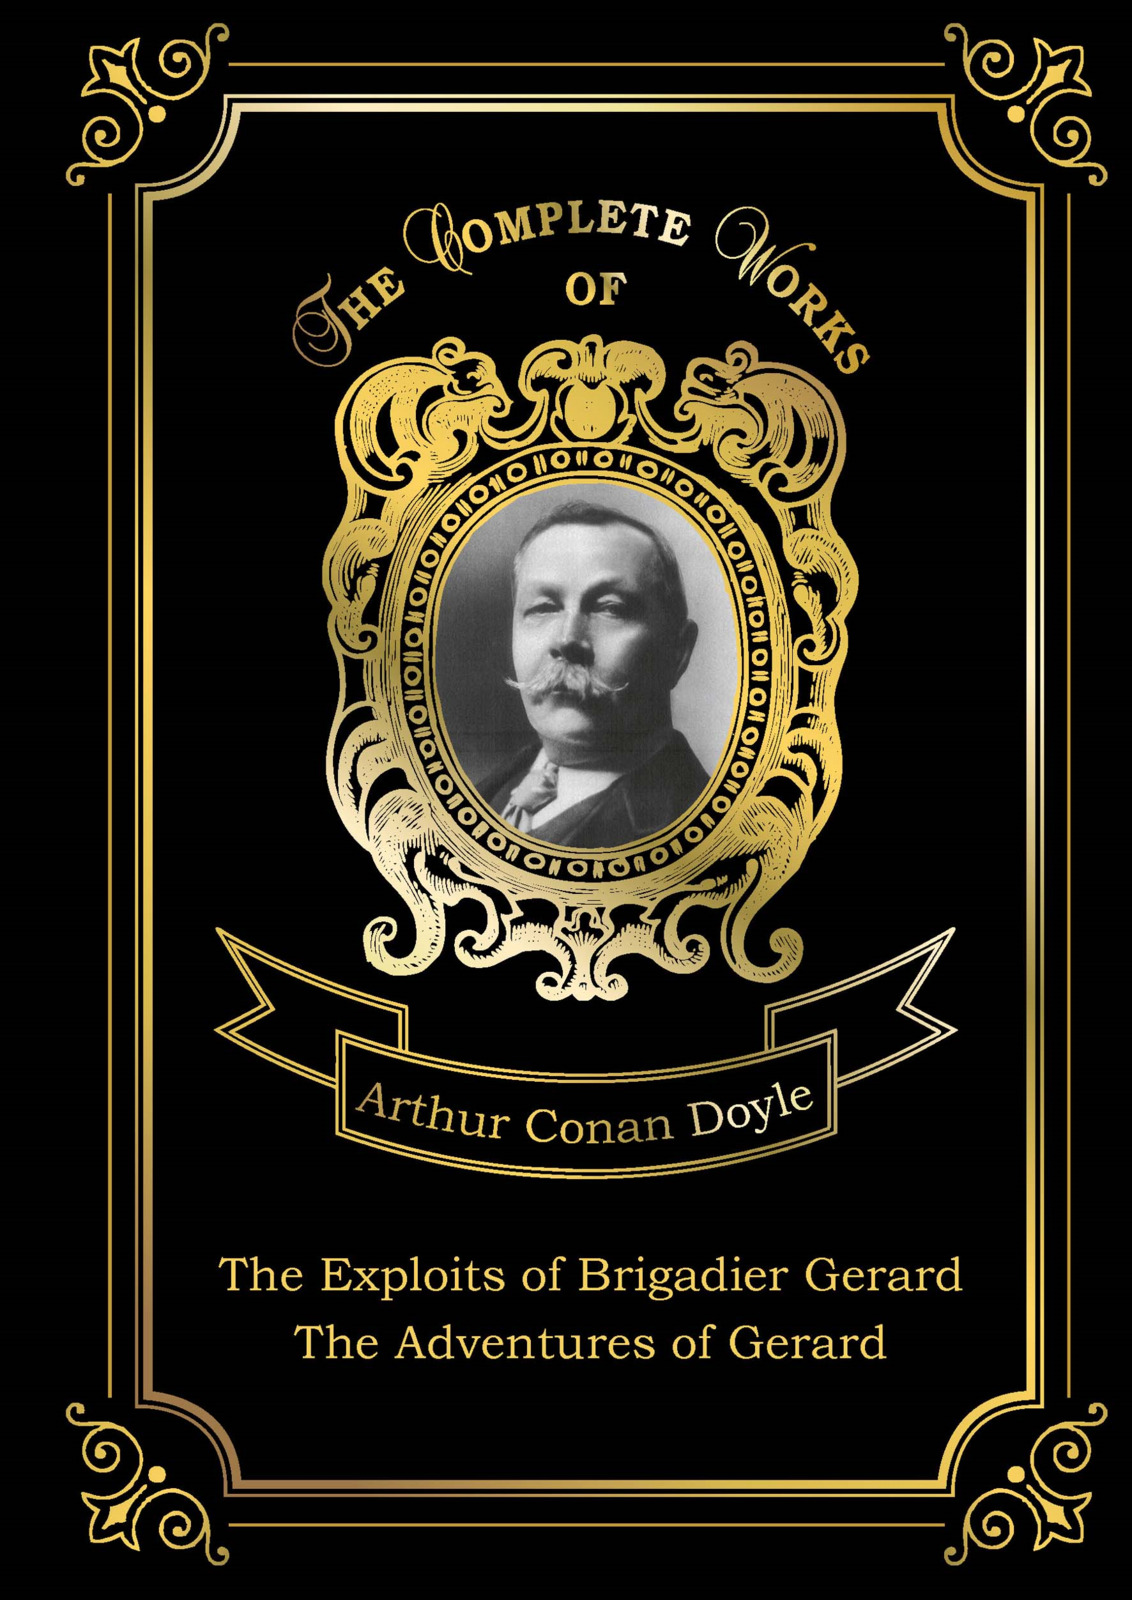 Arthur Conan Doyle The Exploits of Brigadier Gerard: The Adventures of Gerard lnmbbs car tablet android 5 1 octa core 3g phone call 10 1 inch tablette 1280 800ips wifi 5 0 mp function 1 16gb multi play card